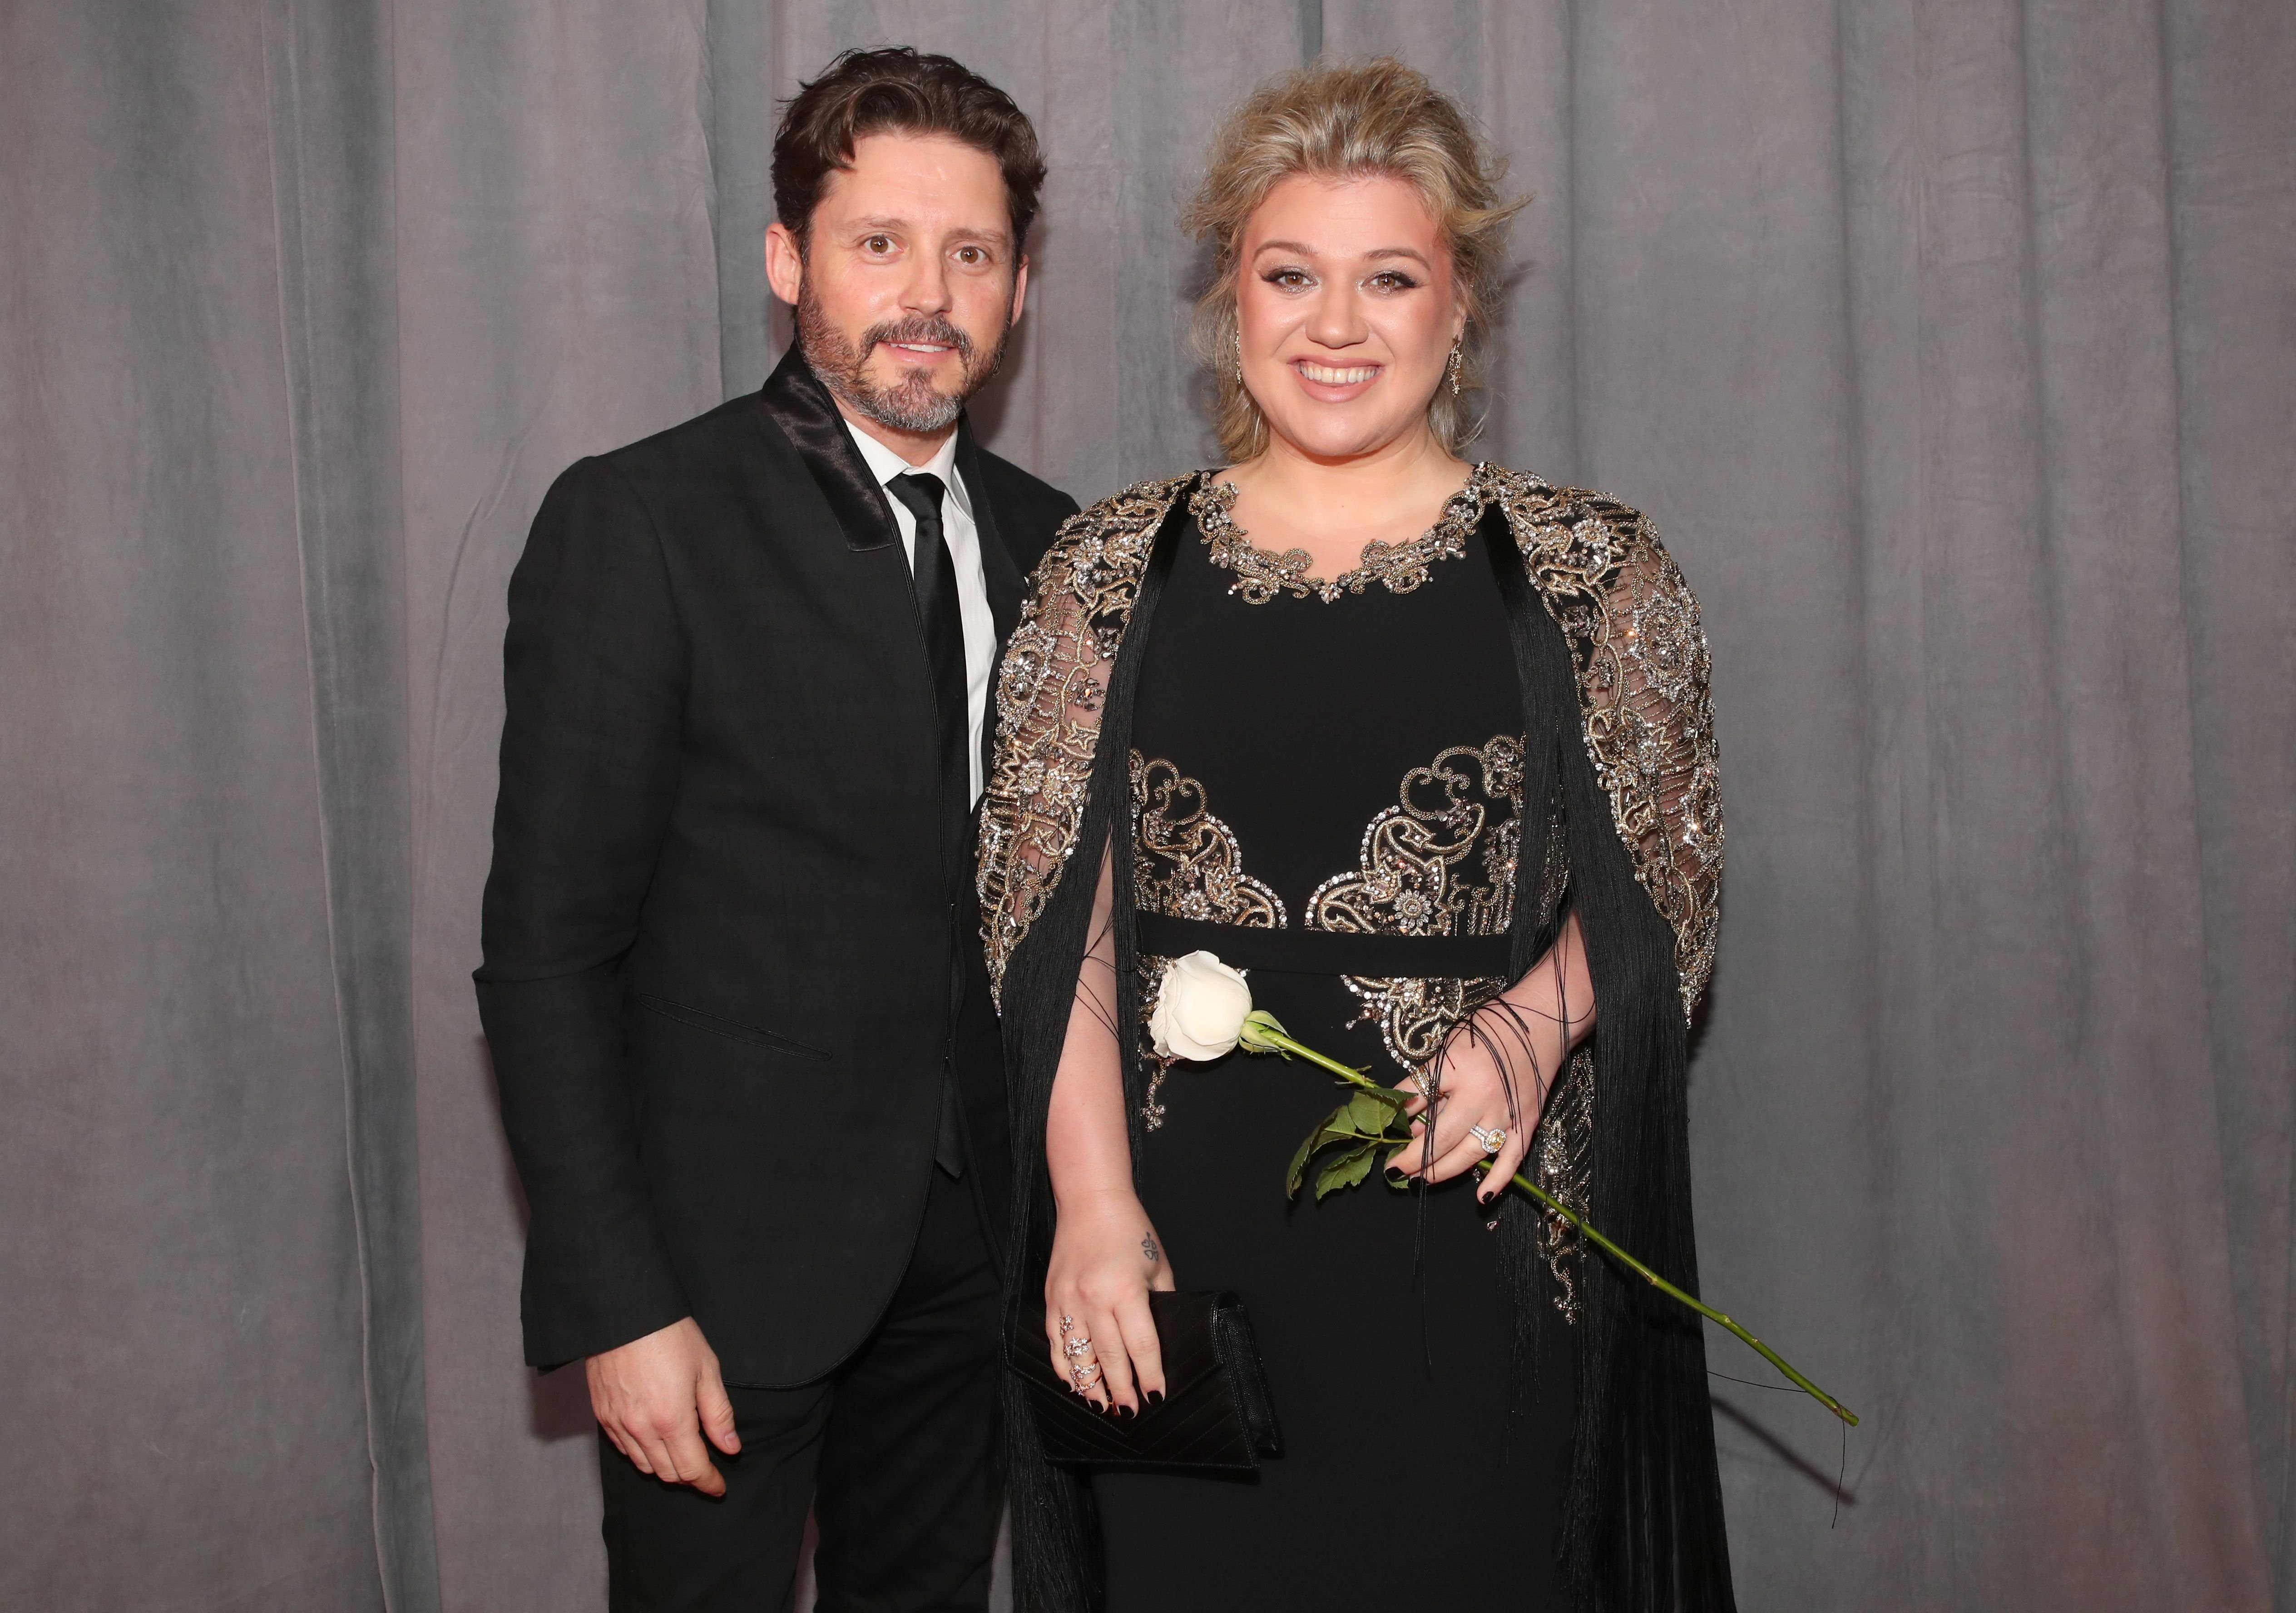 Brandon Blackstock and Kelly Clarkson at the 60th Annual GRAMMY Awards at Madison Square Garden on January 28, 2018 | Photo: Getty Images